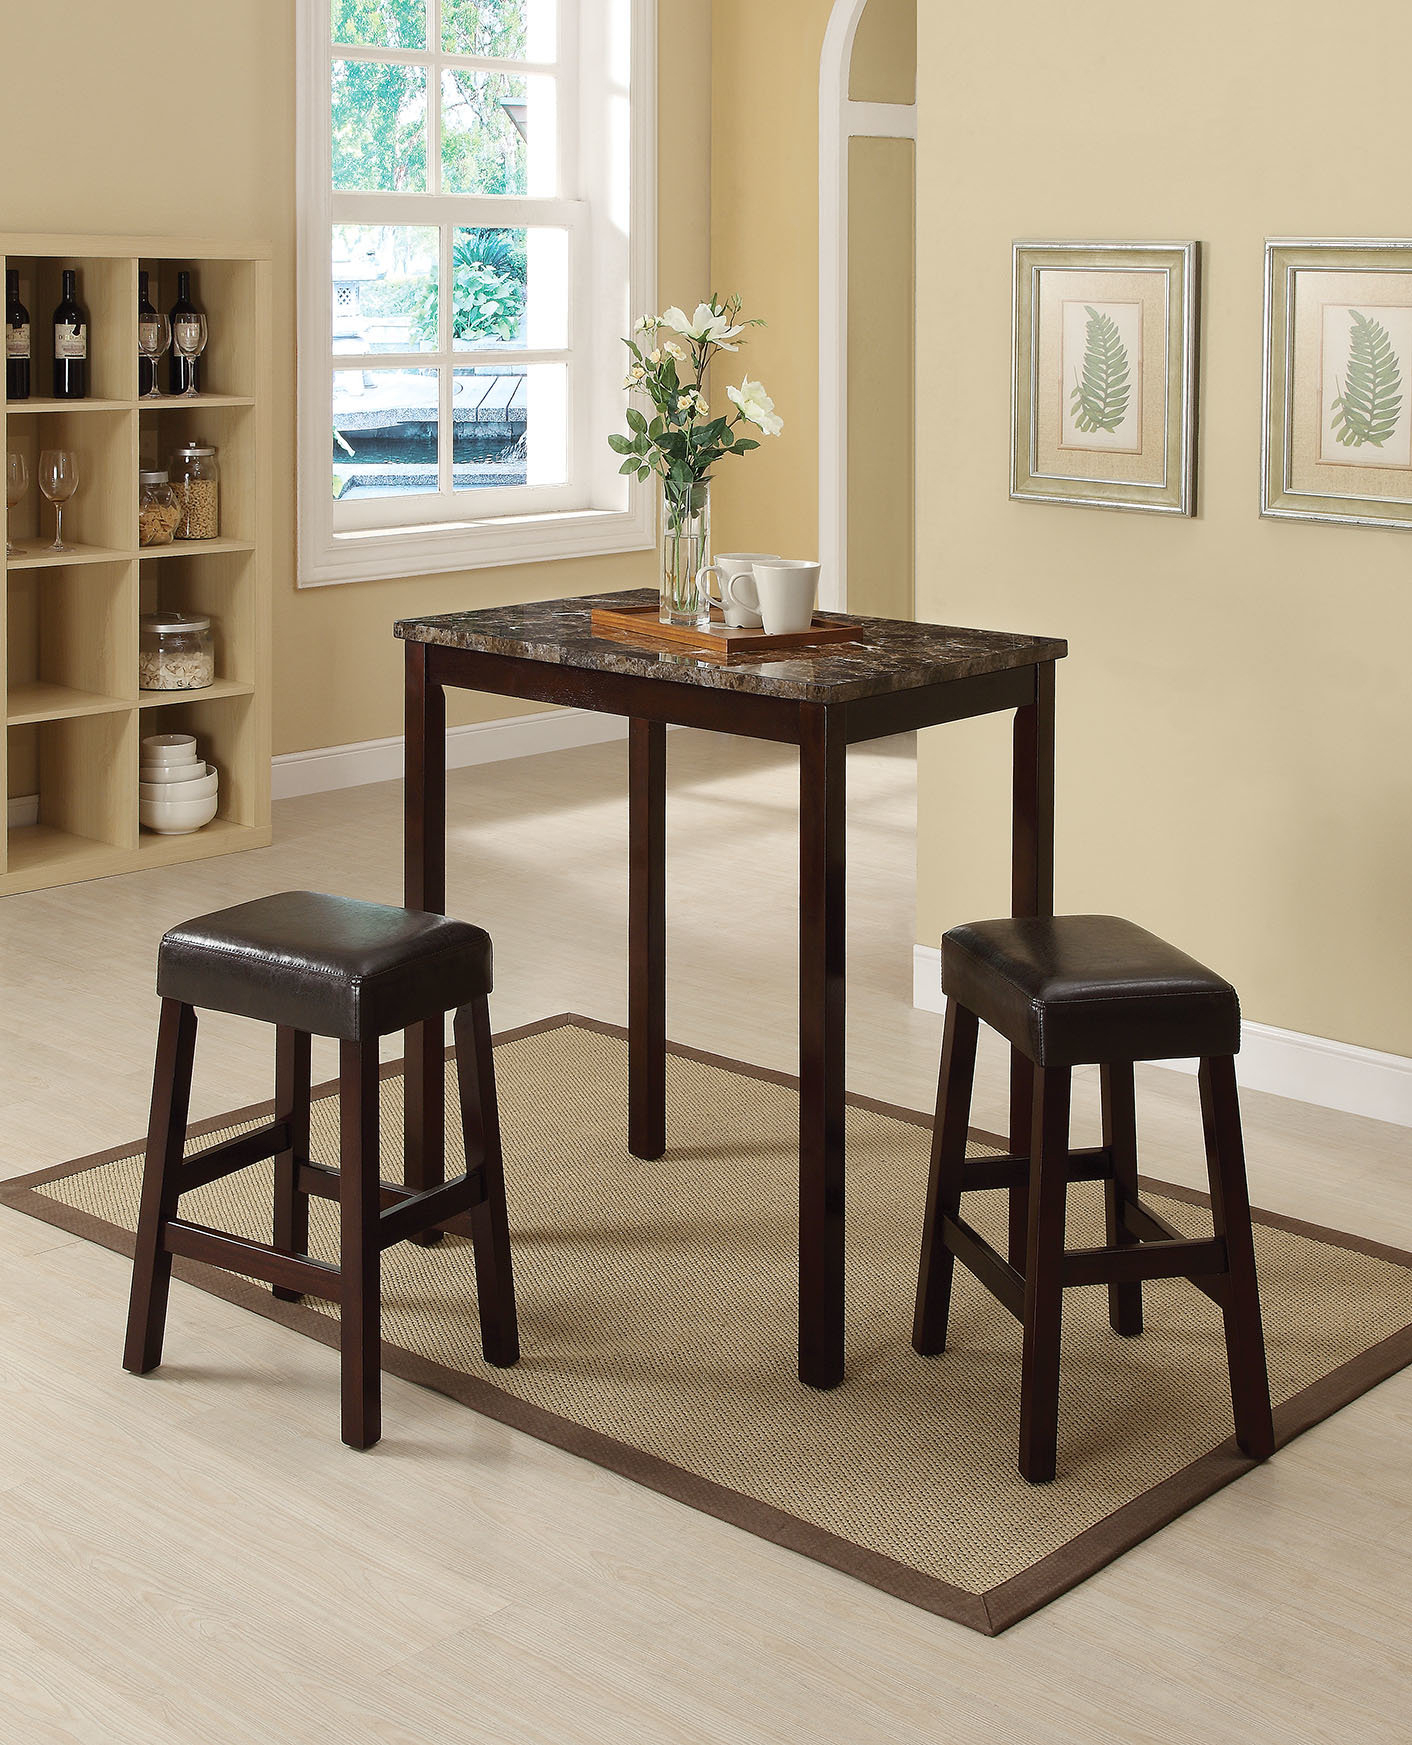 Askern 3 Piece Counter Height Dining Set For Latest Penelope 3 Piece Counter Height Wood Dining Sets (View 3 of 20)